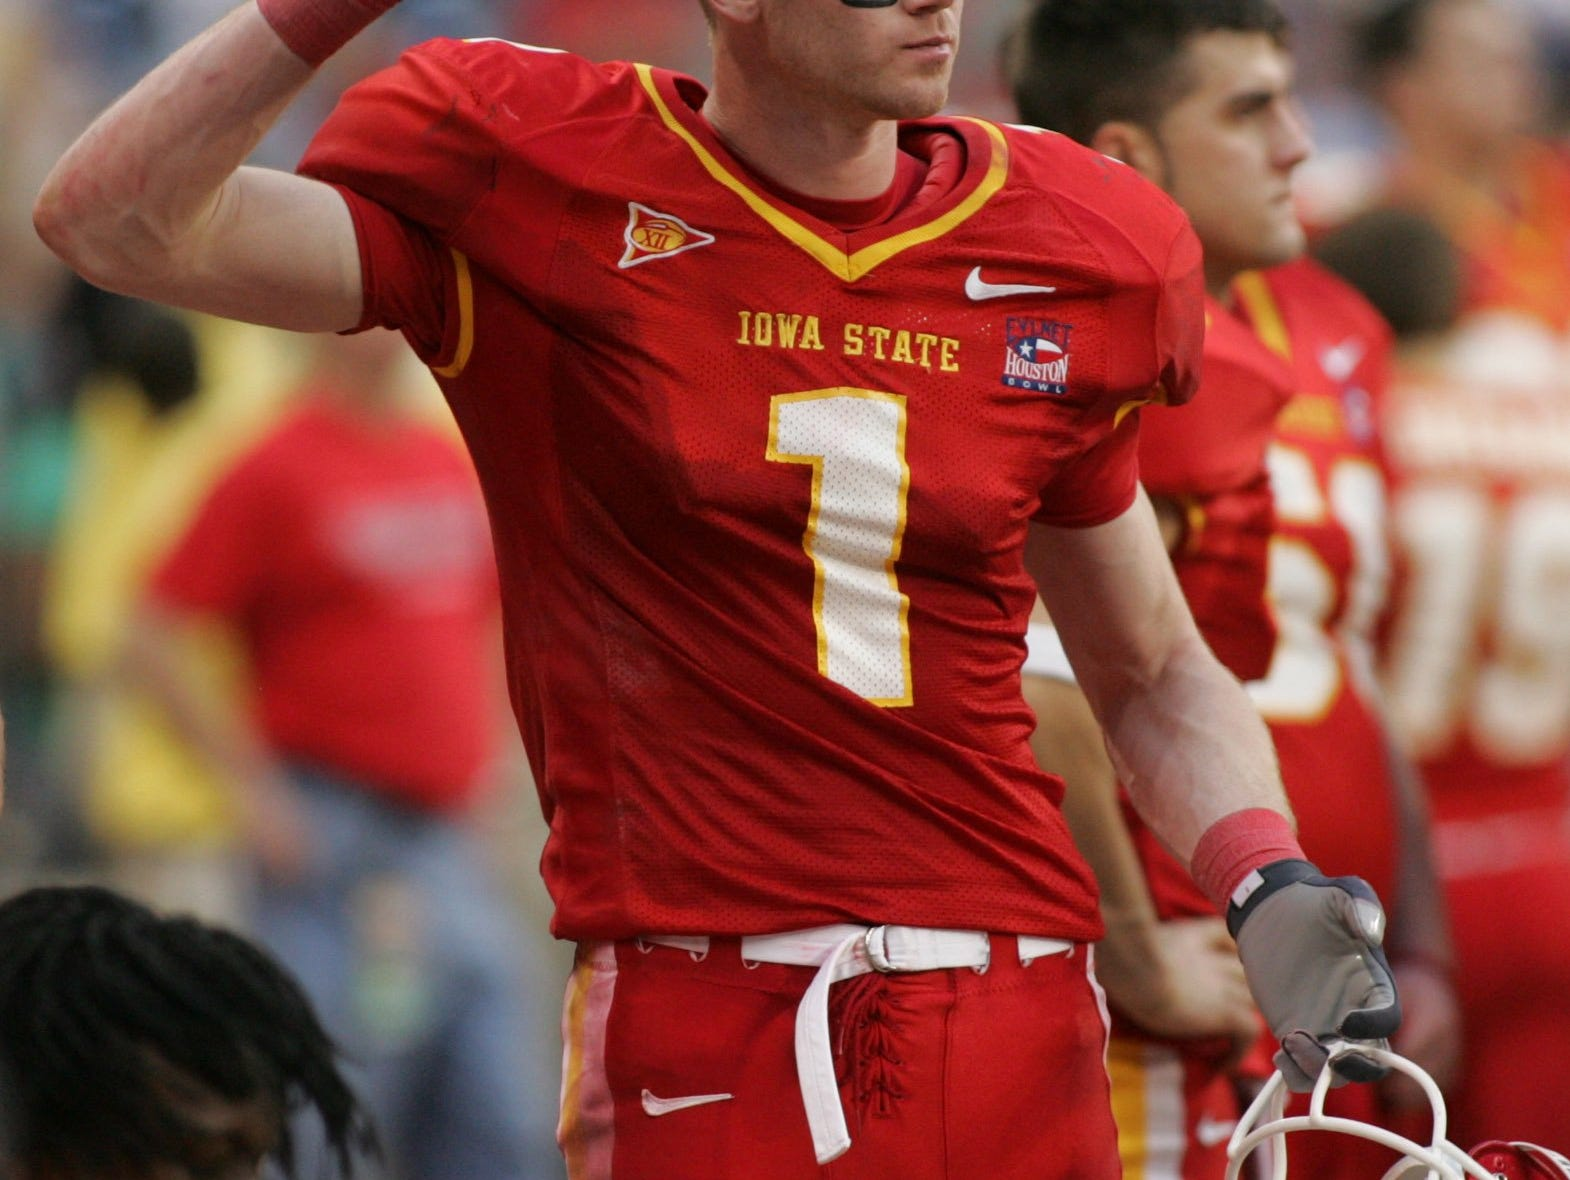 Iowa State wide receiver Todd Blythe, who had two touchdown catches, throws a towel as time runs out on the Cyclones in a 27-24 loss to Texas Christian in the 2005 Houston Bowl.